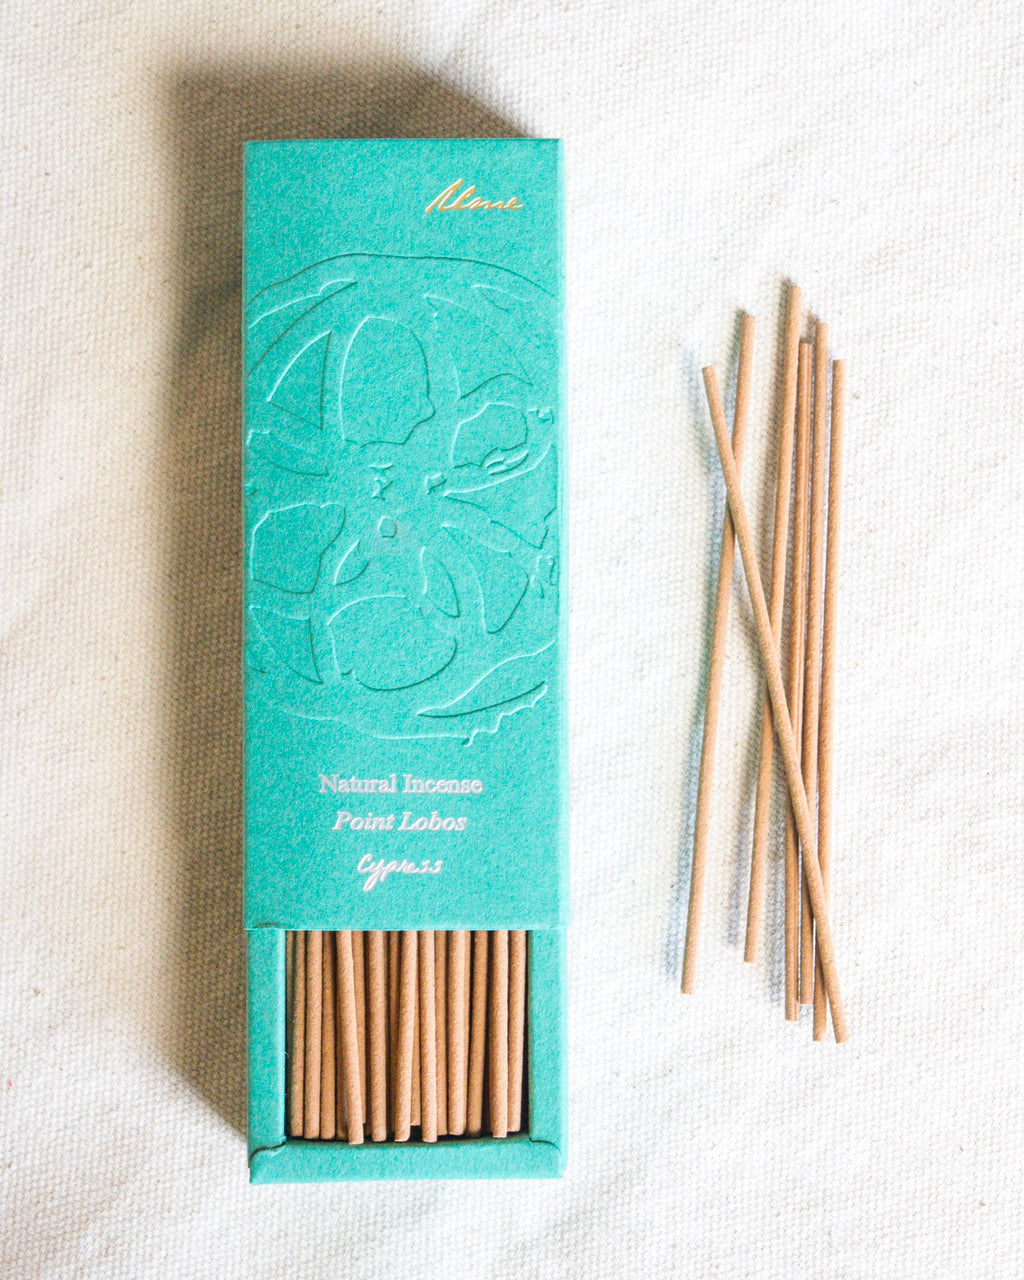 Point Lobos (Cypress) | Natural Incense